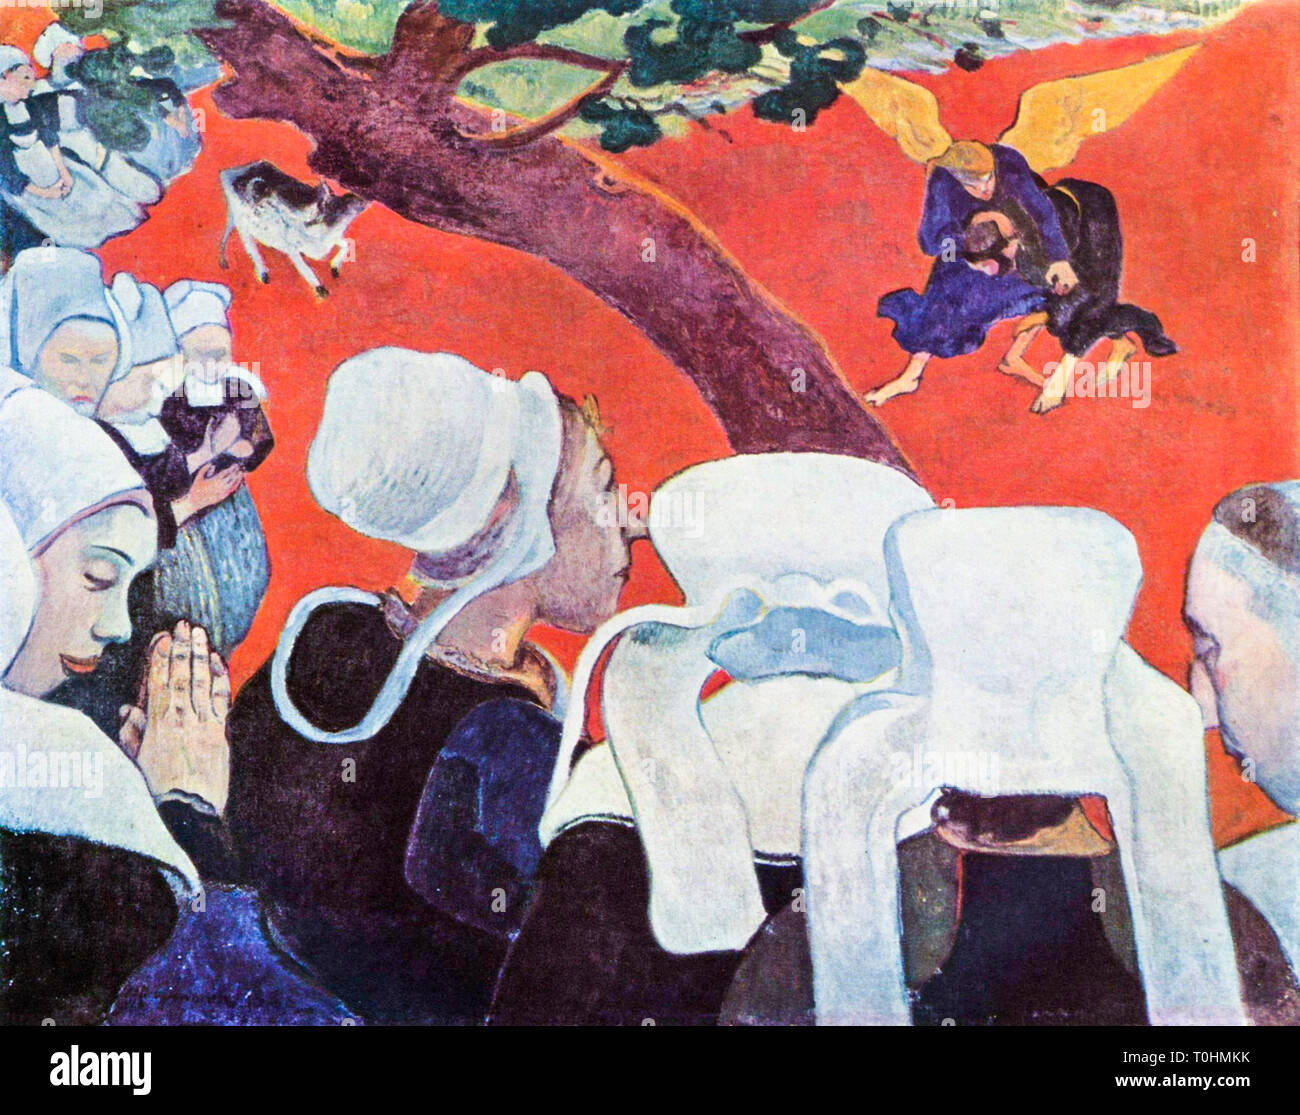 Paul Gauguin, The Vision After the Sermon (Jacob wrestling with the Angel), painting, 1888 - Stock Image